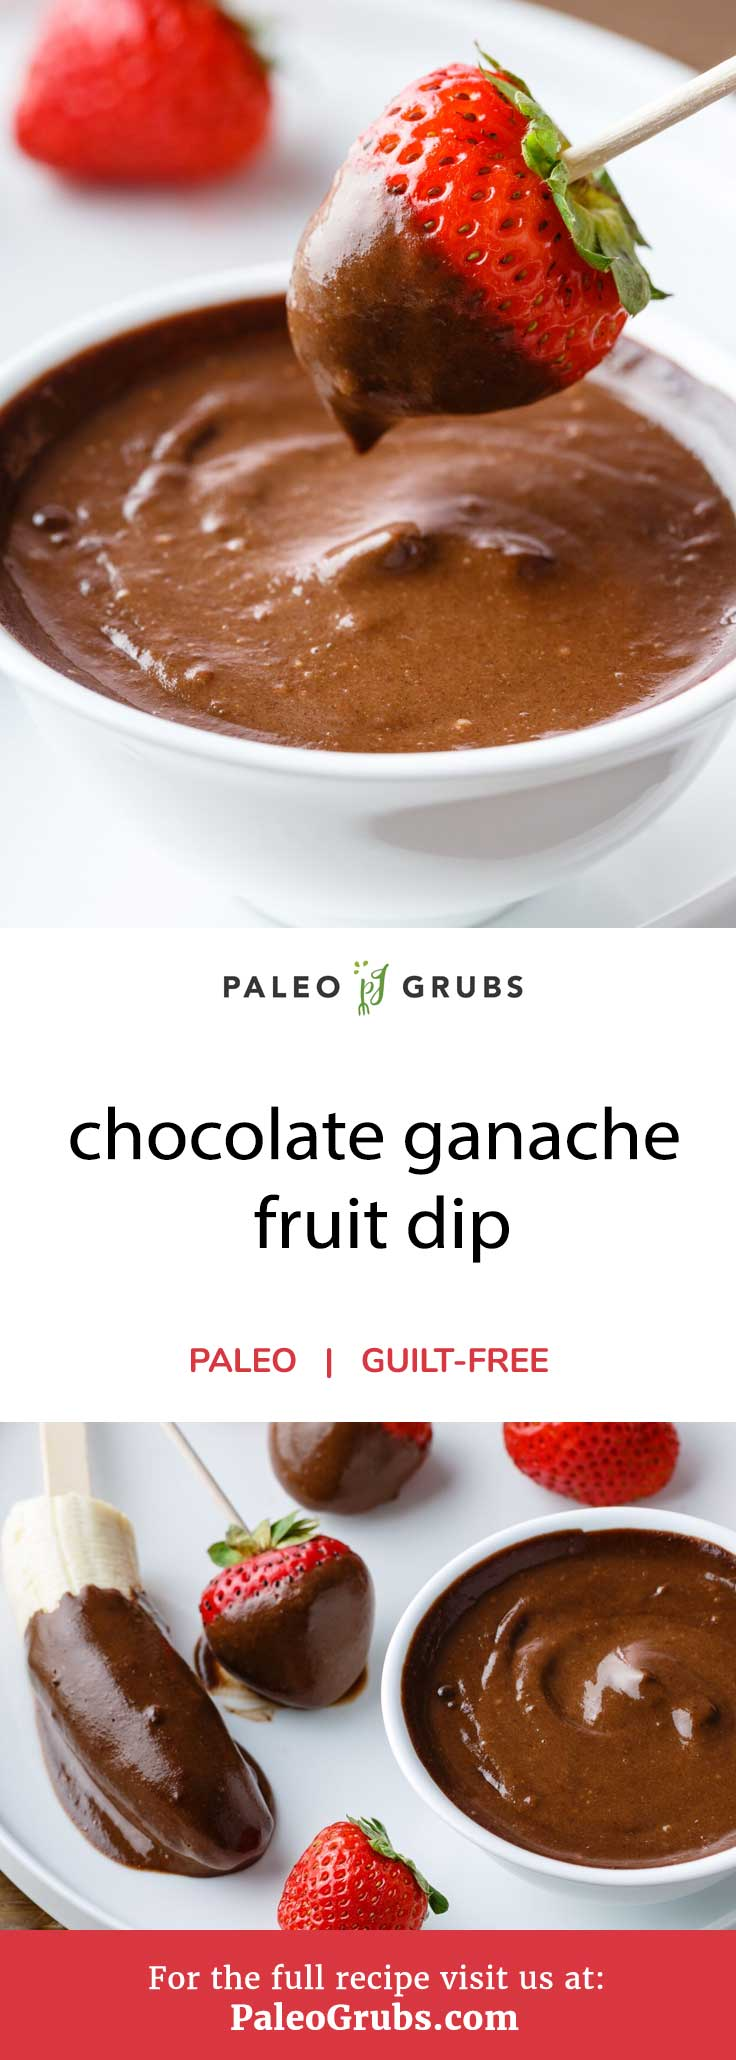 This all-natural chocolate ganache fruit dip is recipe is just to die for. Using only a few simple ingredients and taking only 10 minutes to prepare, you can make your own homemade ganache that is dairy and sugar-free while still being rich, sweet and absolutely perfect for dipping your favorite fruit in.